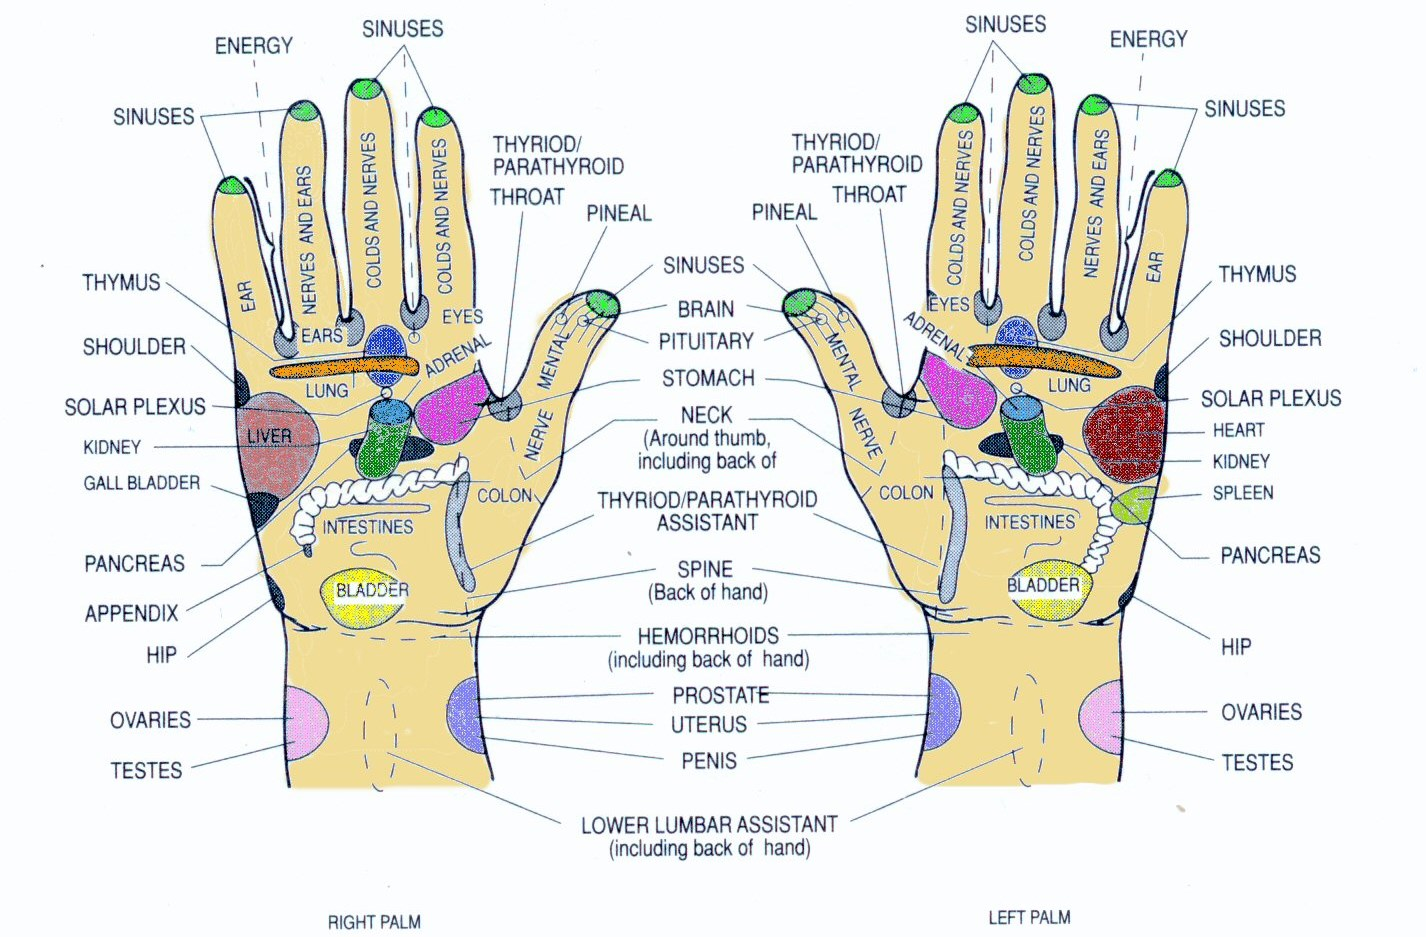 top of foot pain diagram 3 way lighting wiring uk october 2013 monterey bay holistic alliance